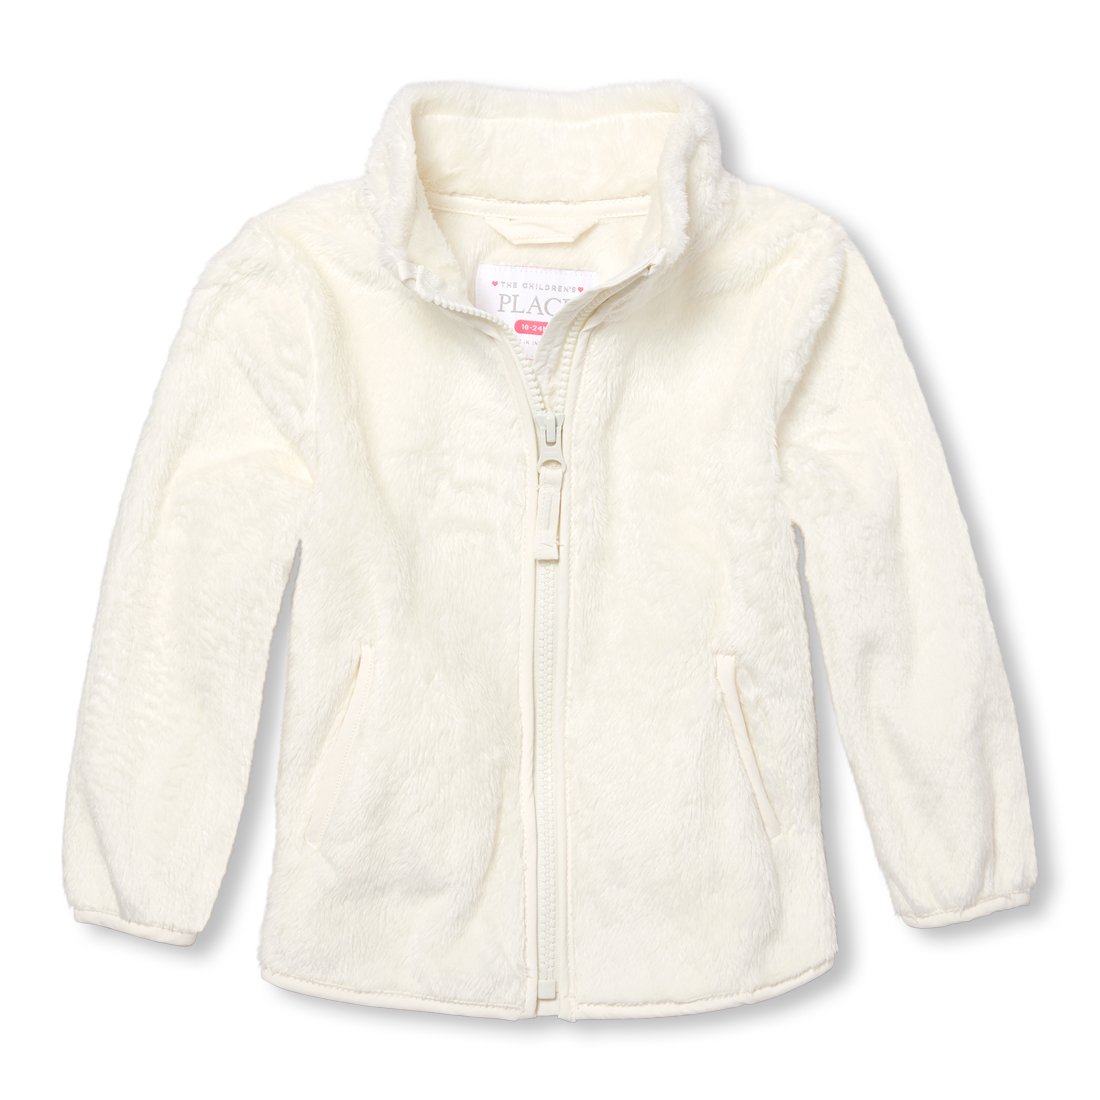 70d39469d The Children s Place Baby Girls Favorite Jacket